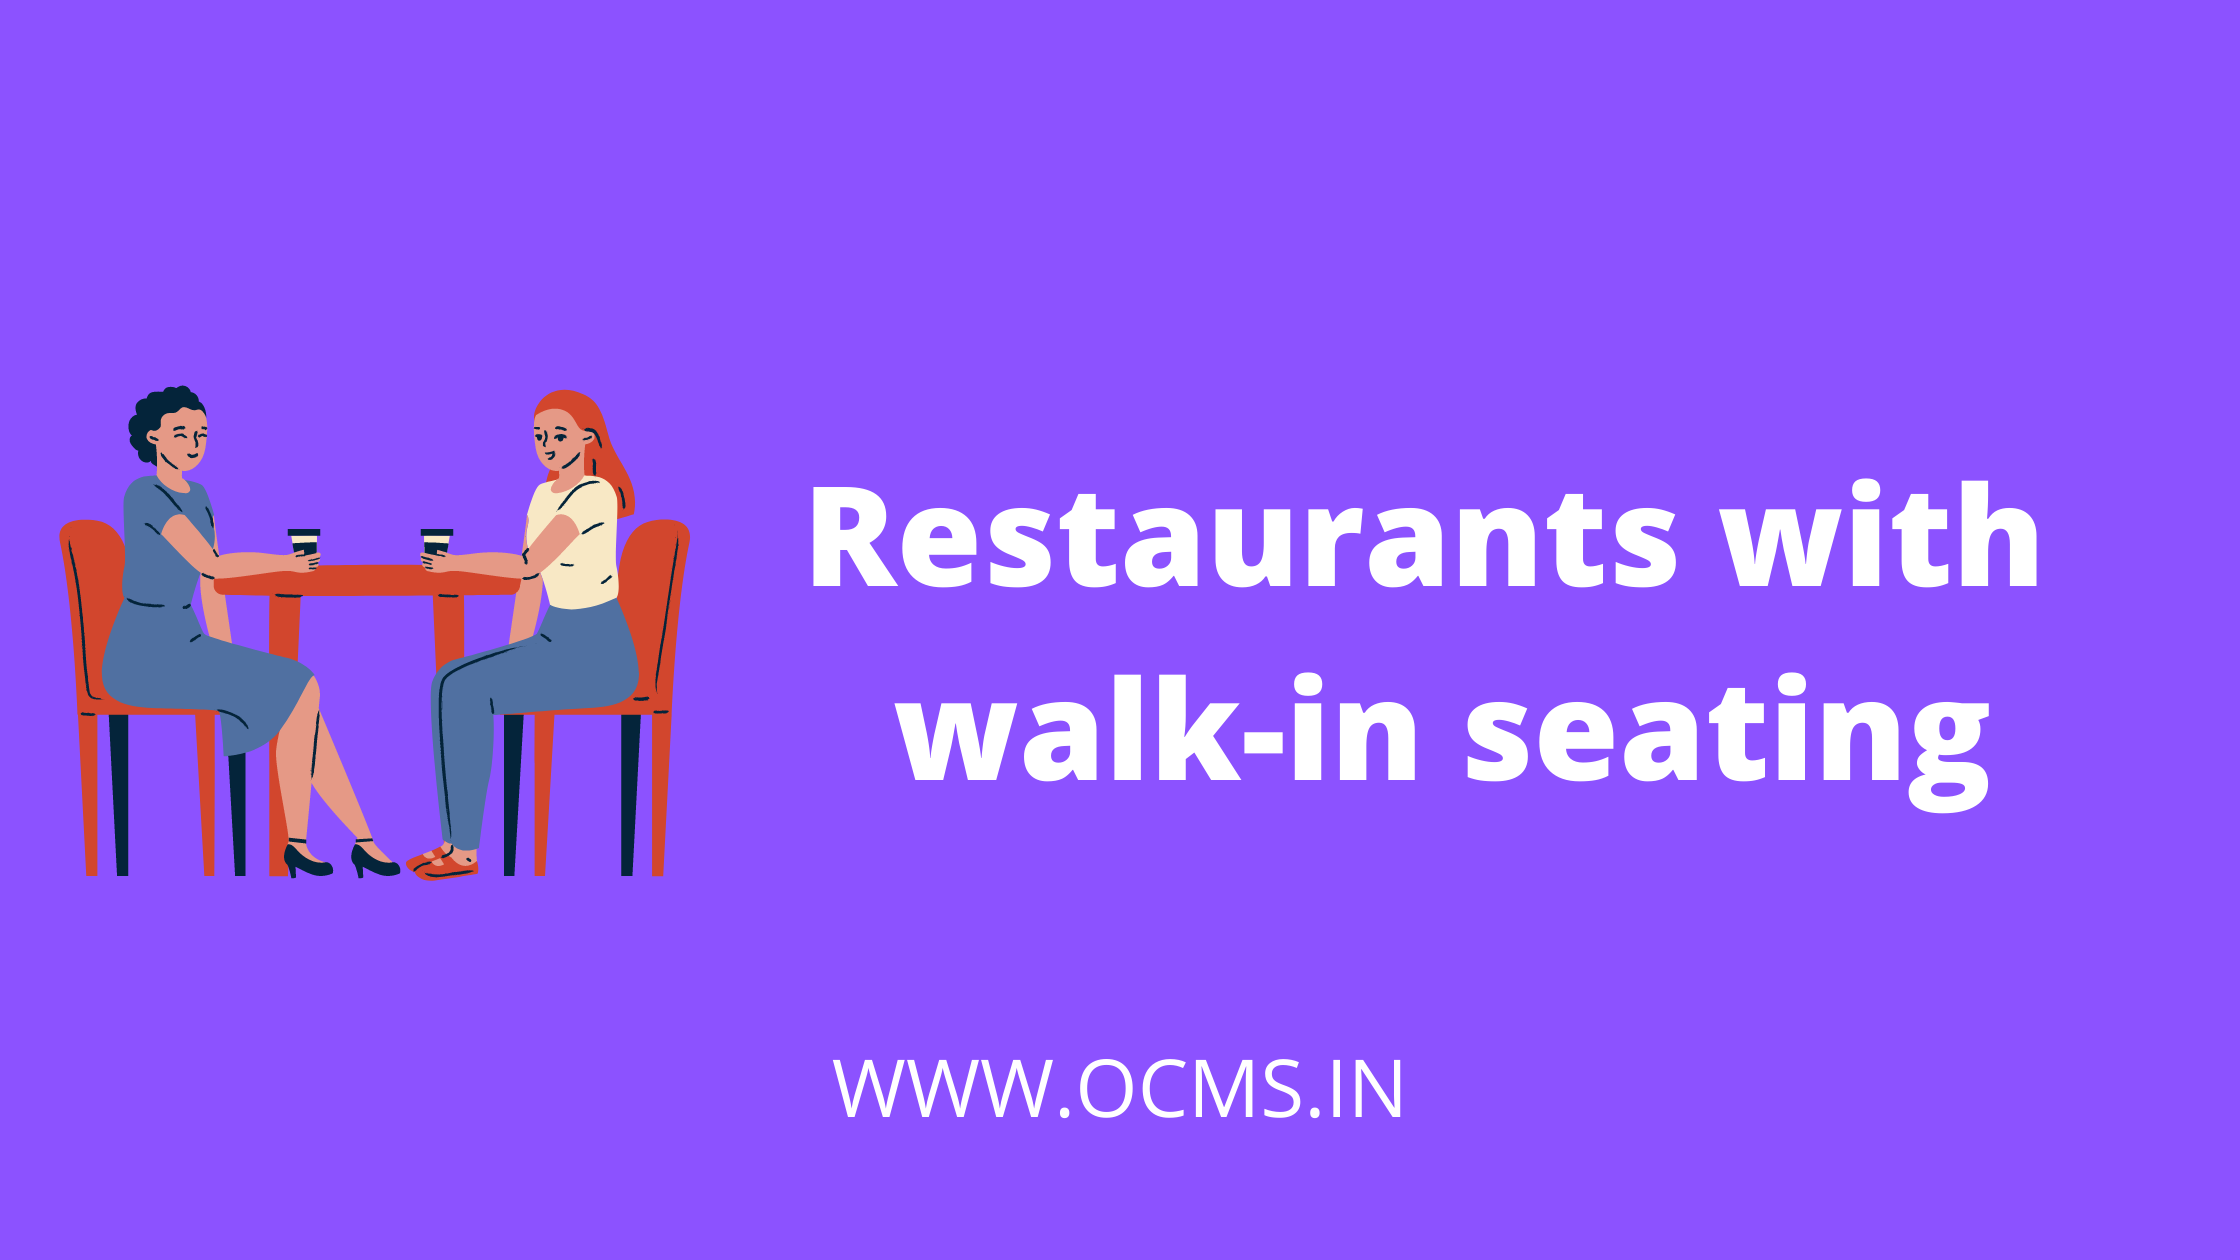 Restaurants with walk-in seating